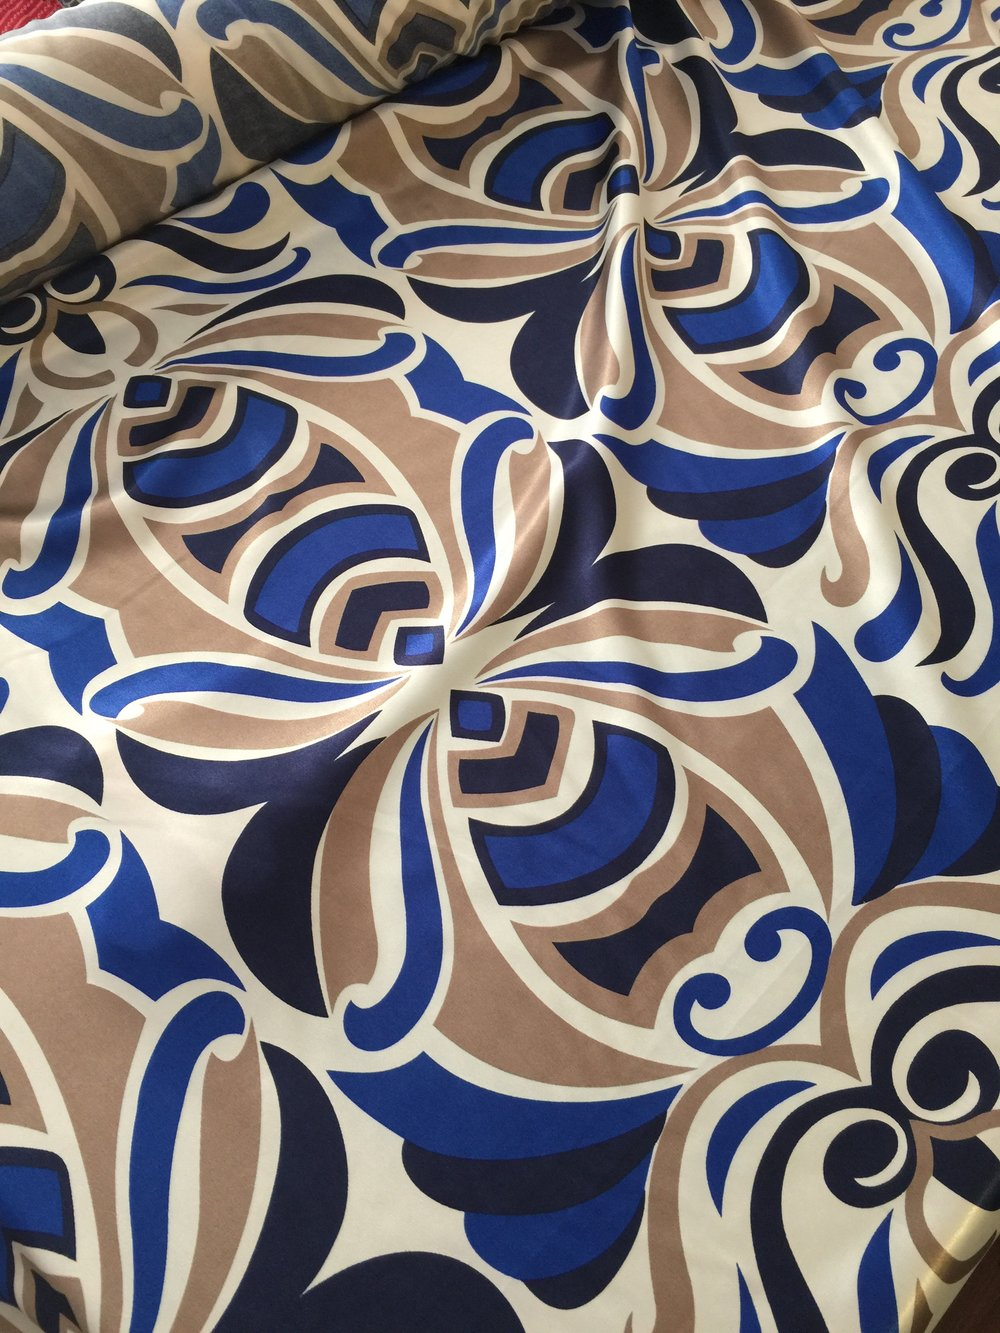 The blue and white satin fabric has a very retro inspired print.